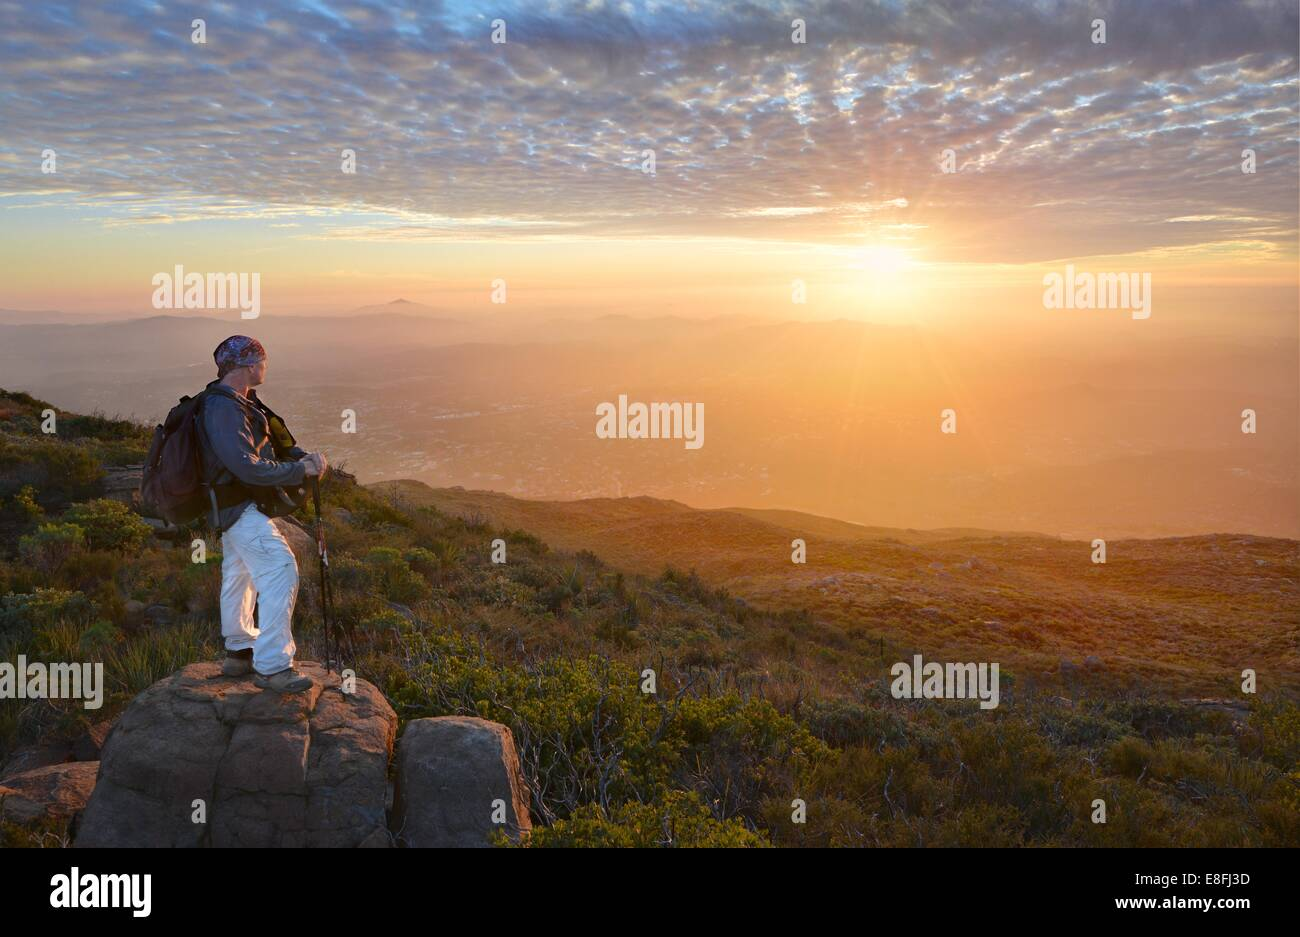 California, Estados Unidos, Cleveland National Forest, Touris mirando al atardecer Imagen De Stock